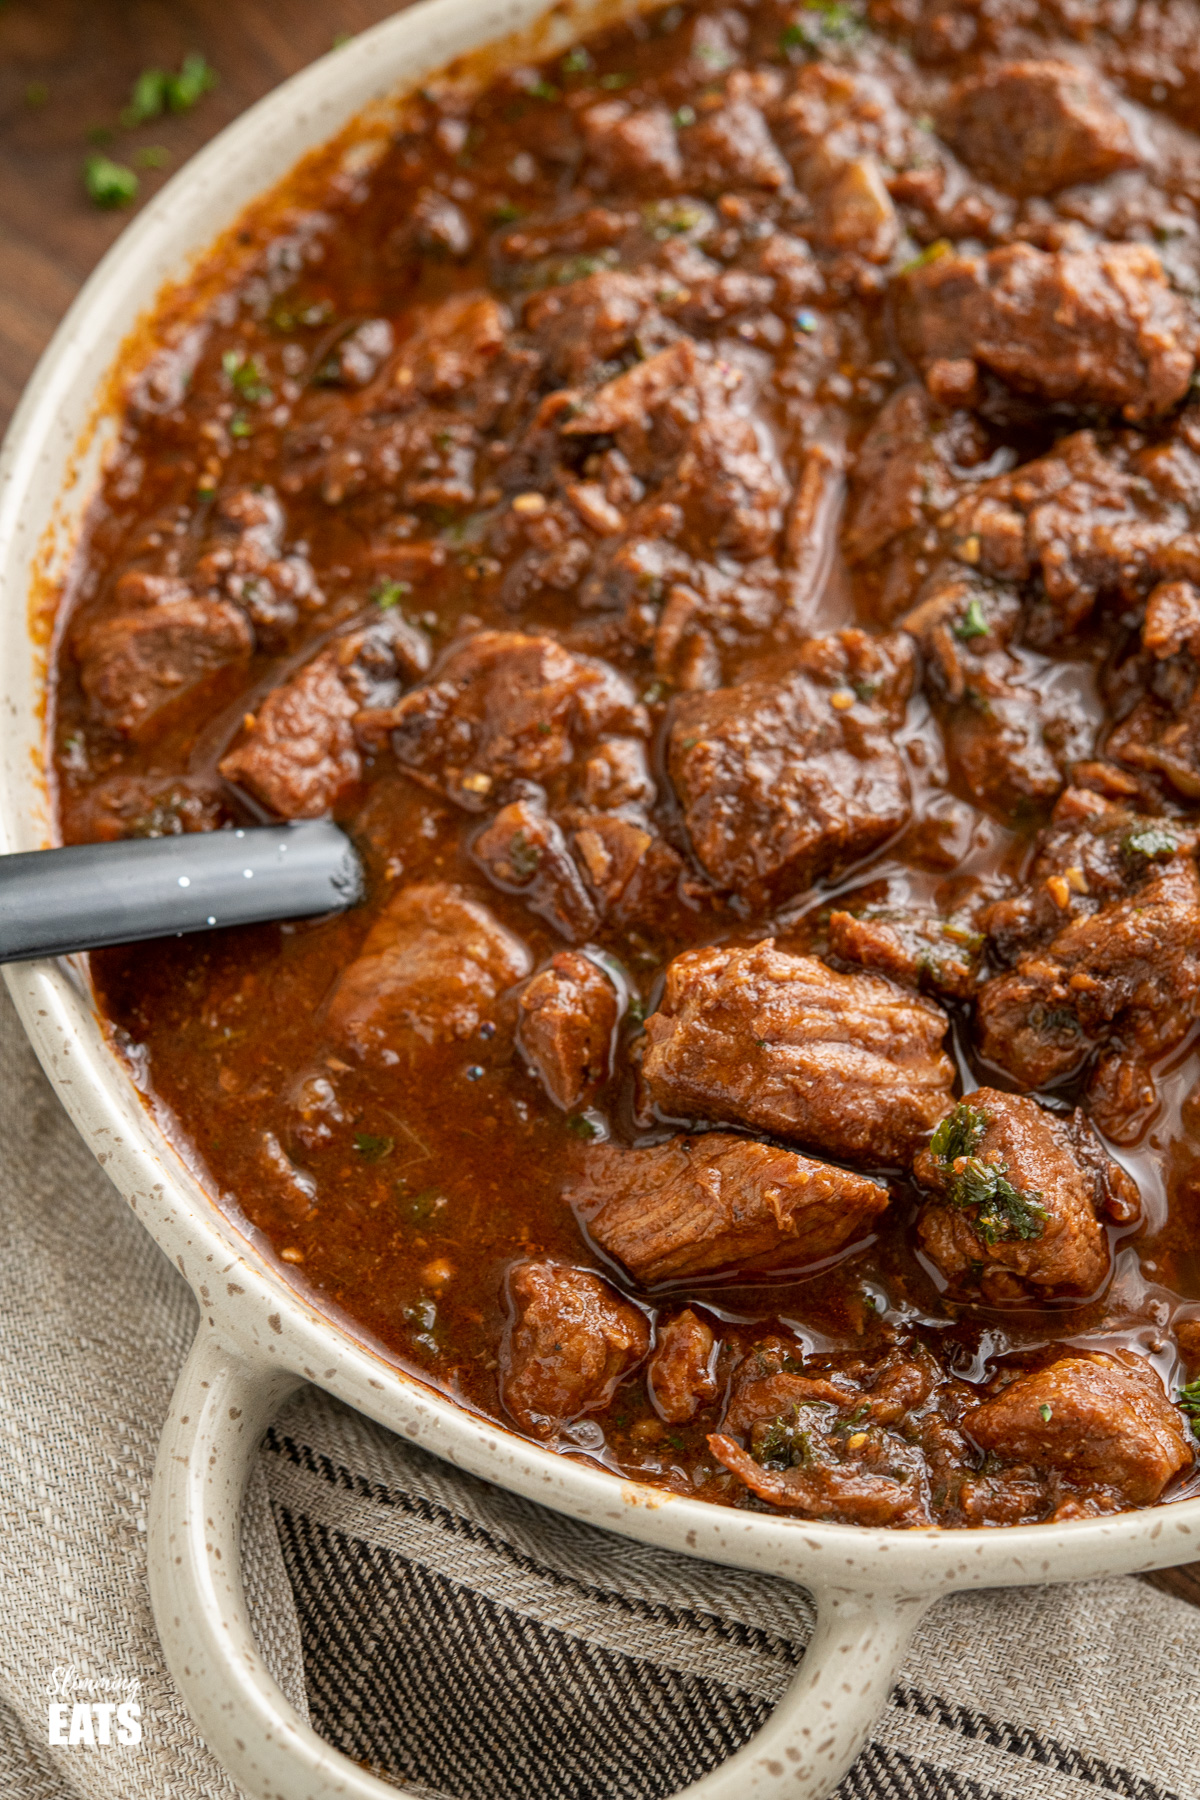 close up of Beef and prune stew in brown grey serving dish